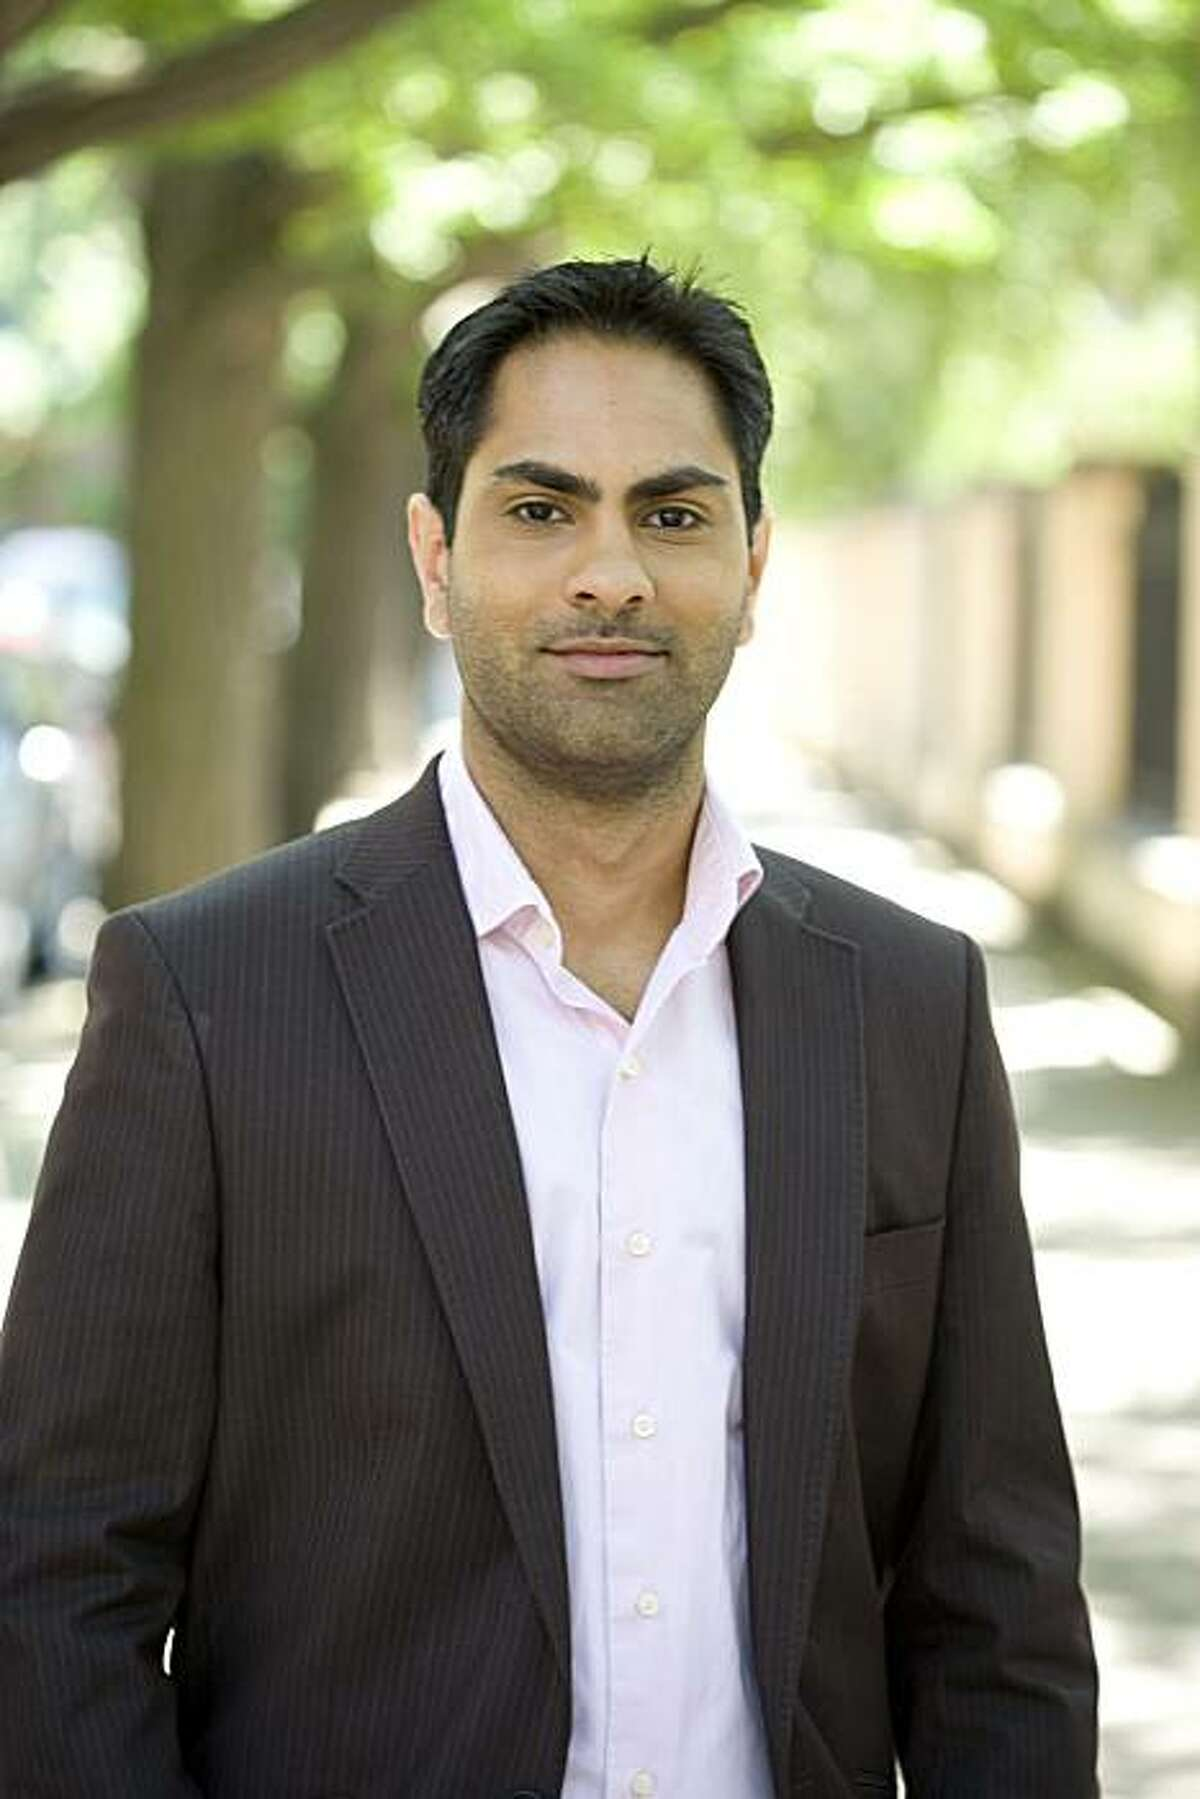 """""""Budgets don't work,"""" says Ramit Sethi, author of the blog (and book) """"I Will Teach You To Be Rich."""" He advocates """"conscious spending"""" instead."""